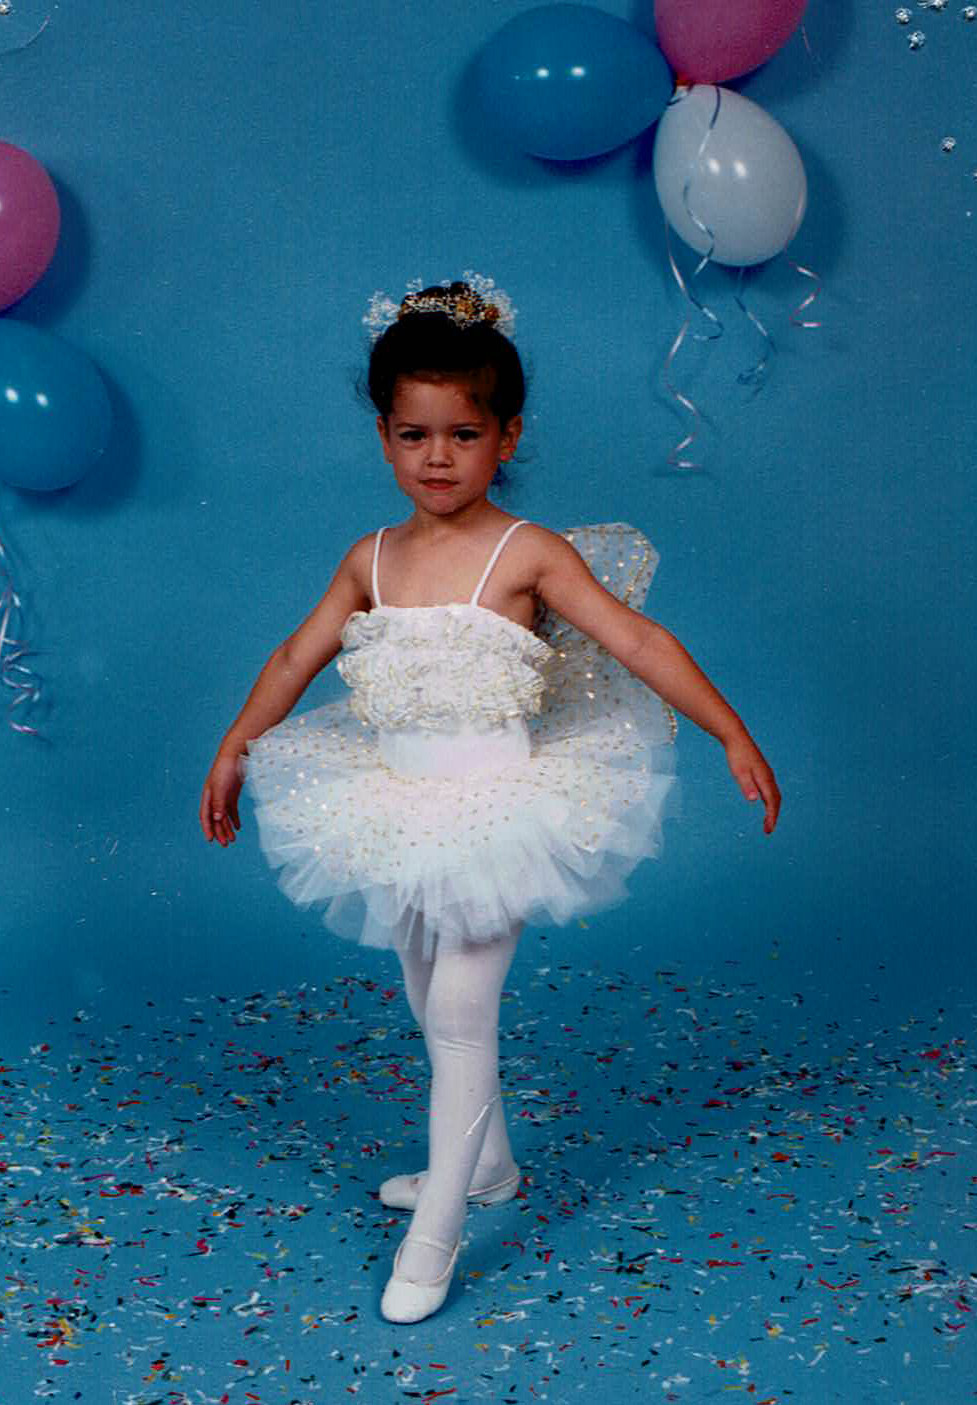 ^ During her first dance recital at age 3, Ali portrayed a snow fairy.